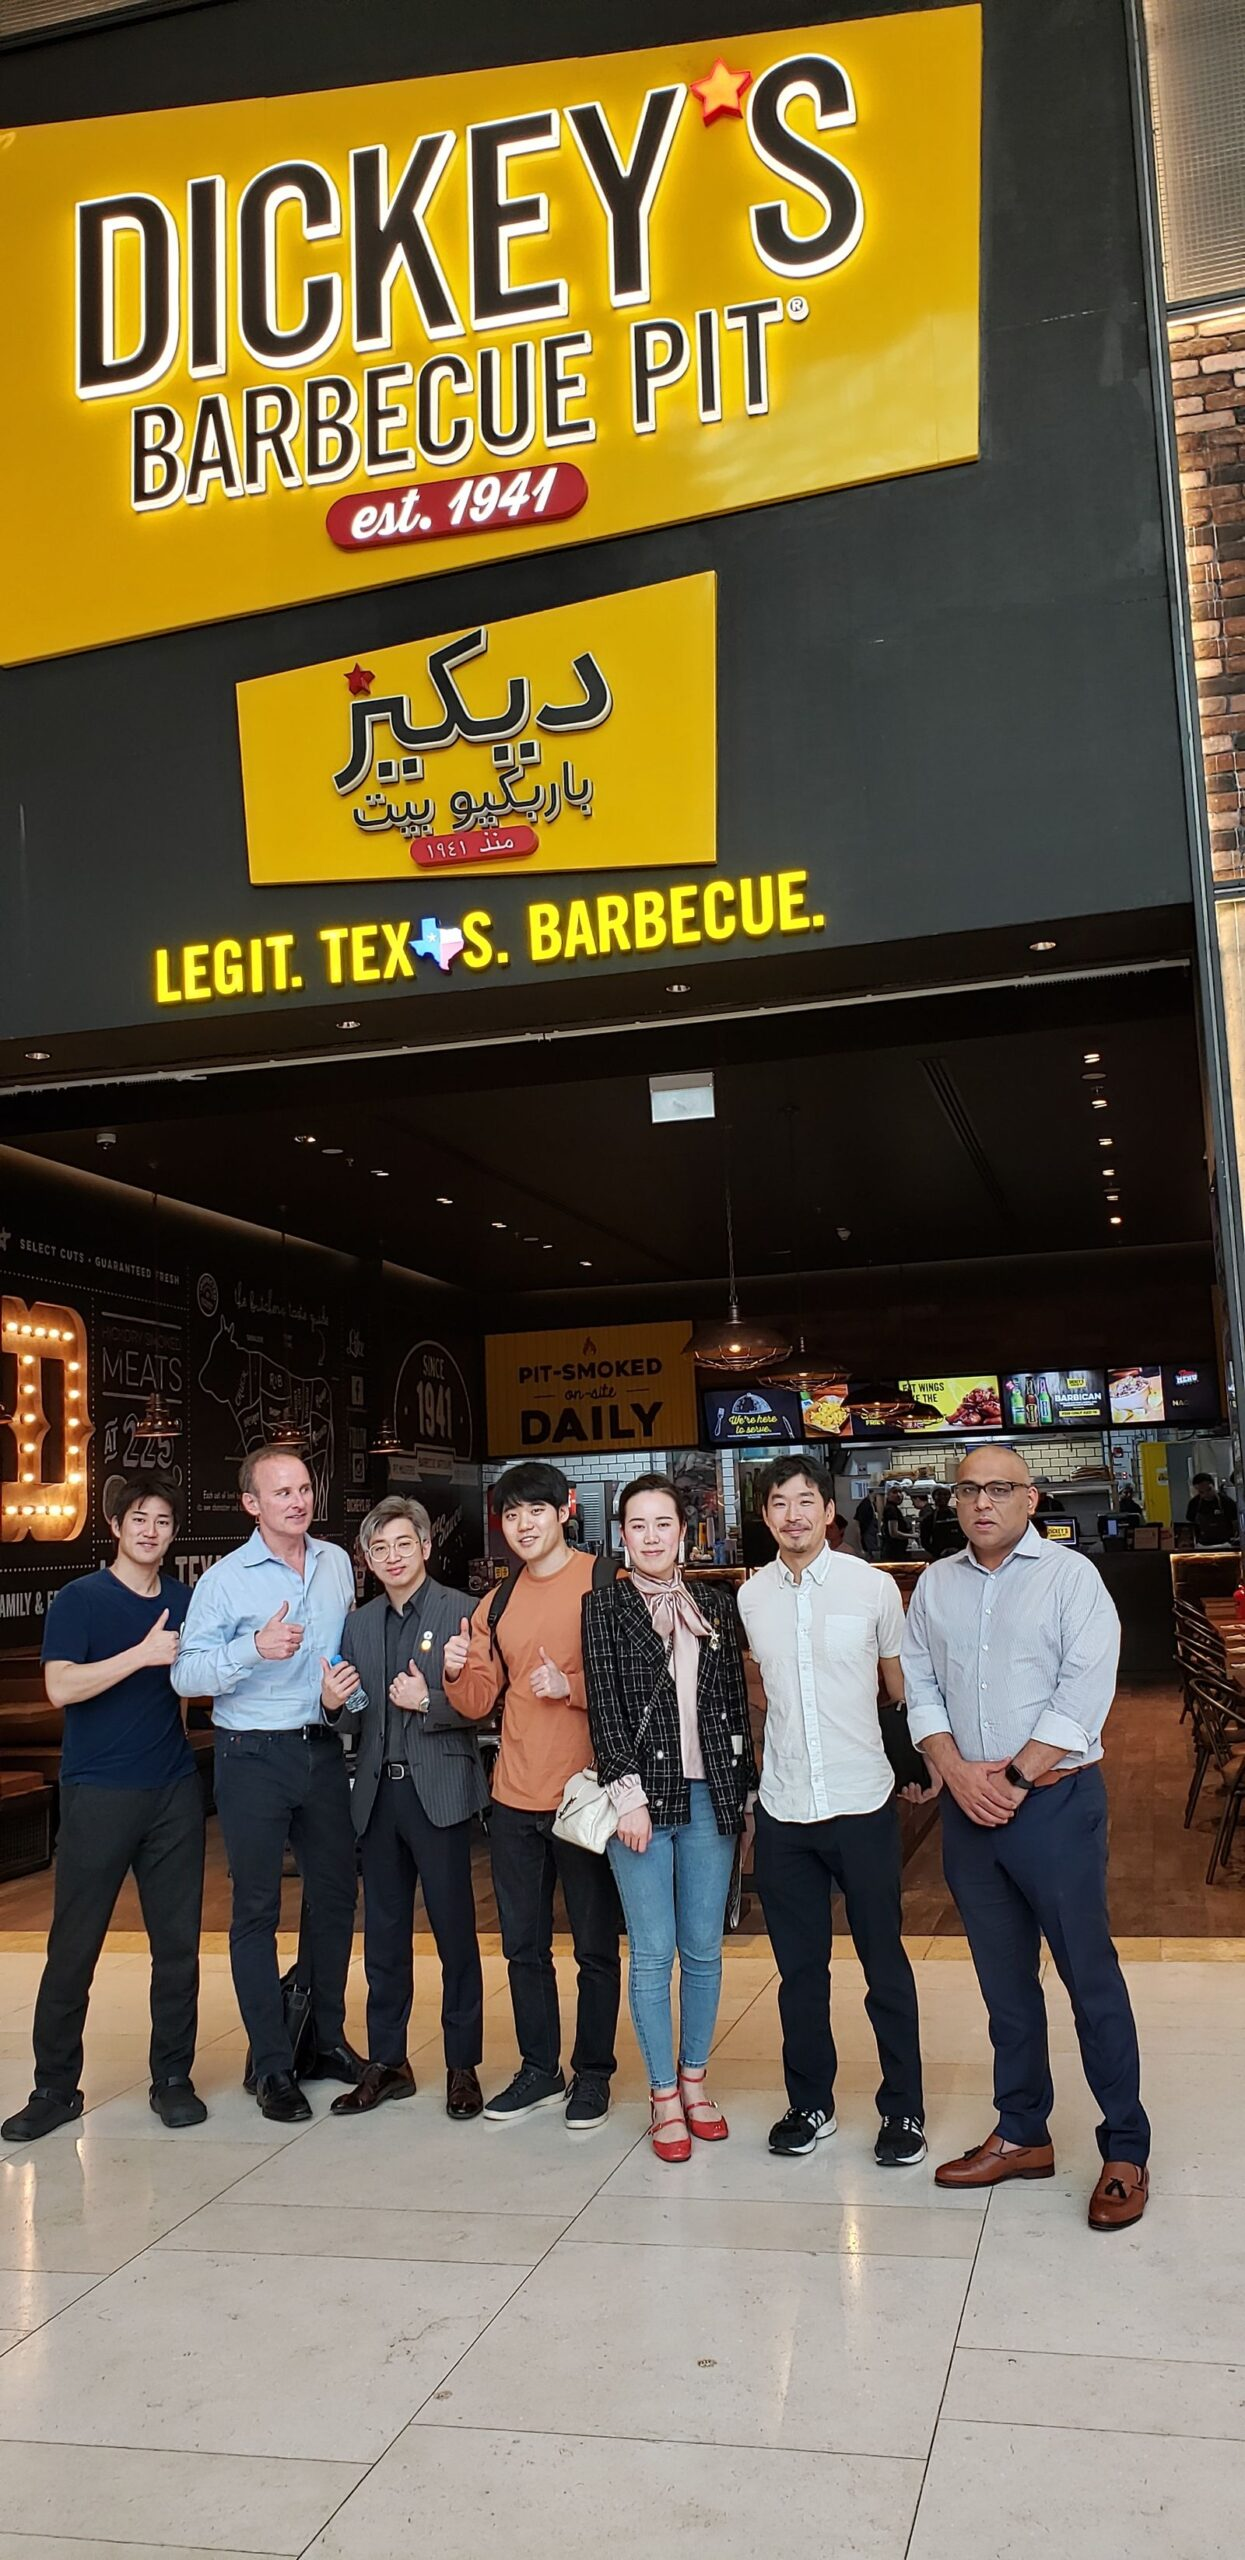 Dickey's Barbecue Pit Executes Key Franchise Deal to Expand Into Japan